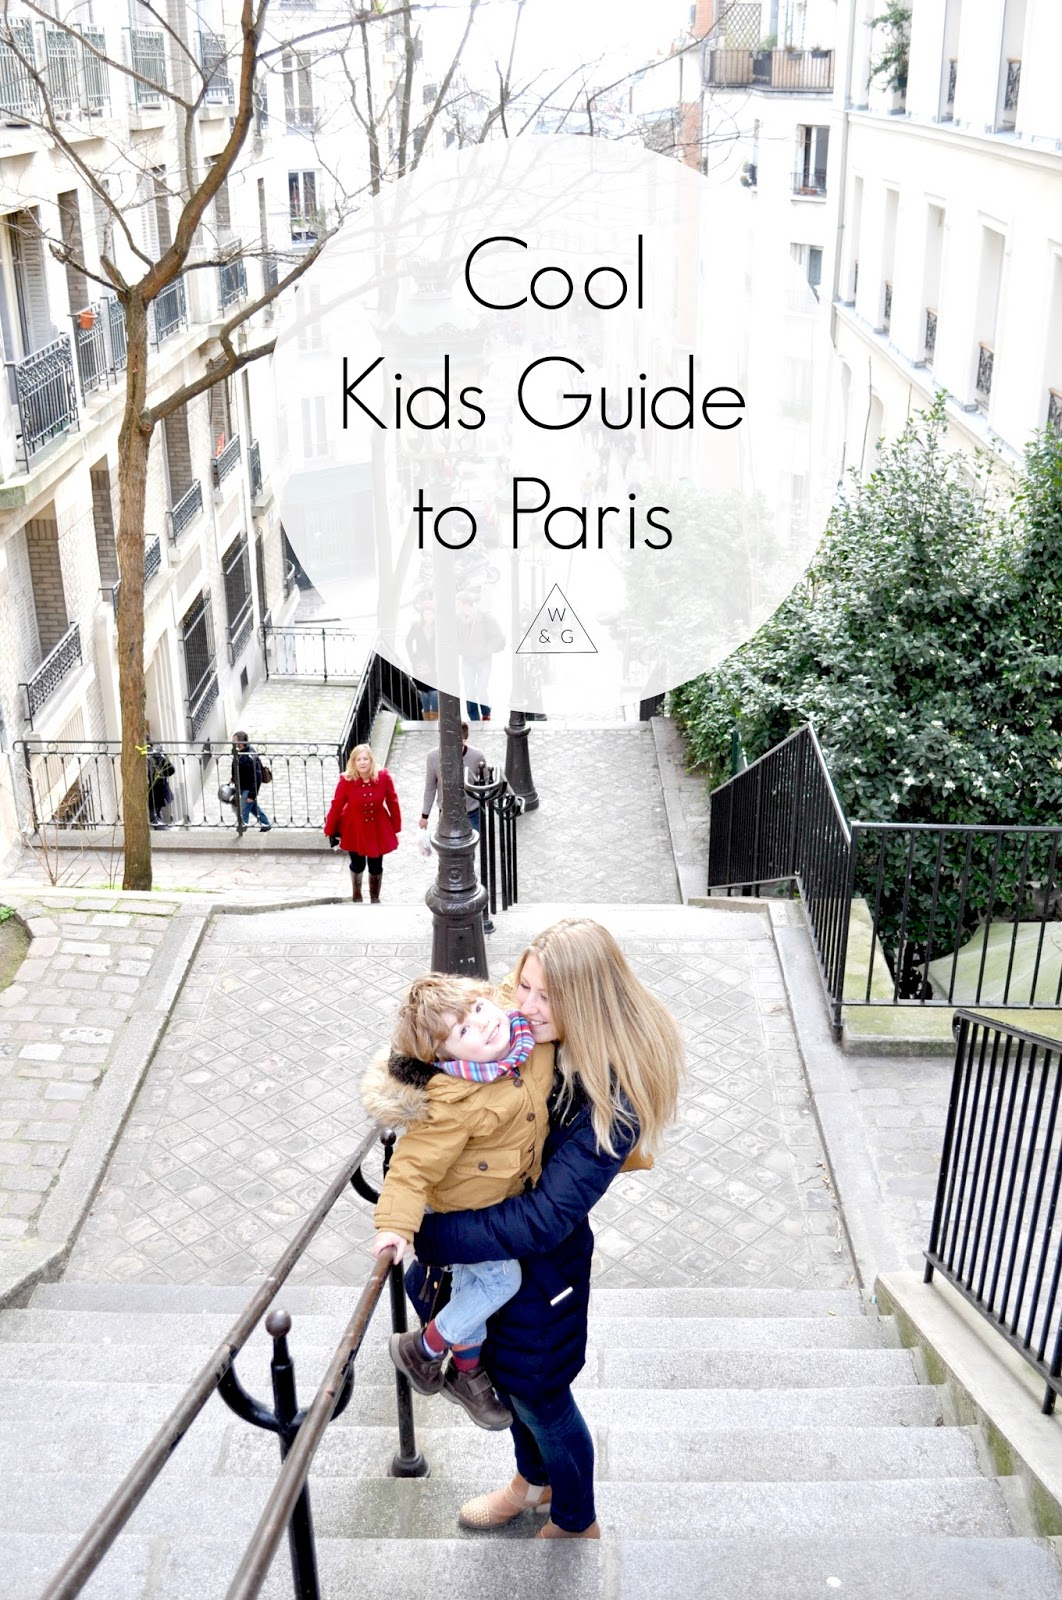 Cool kids guide to paris